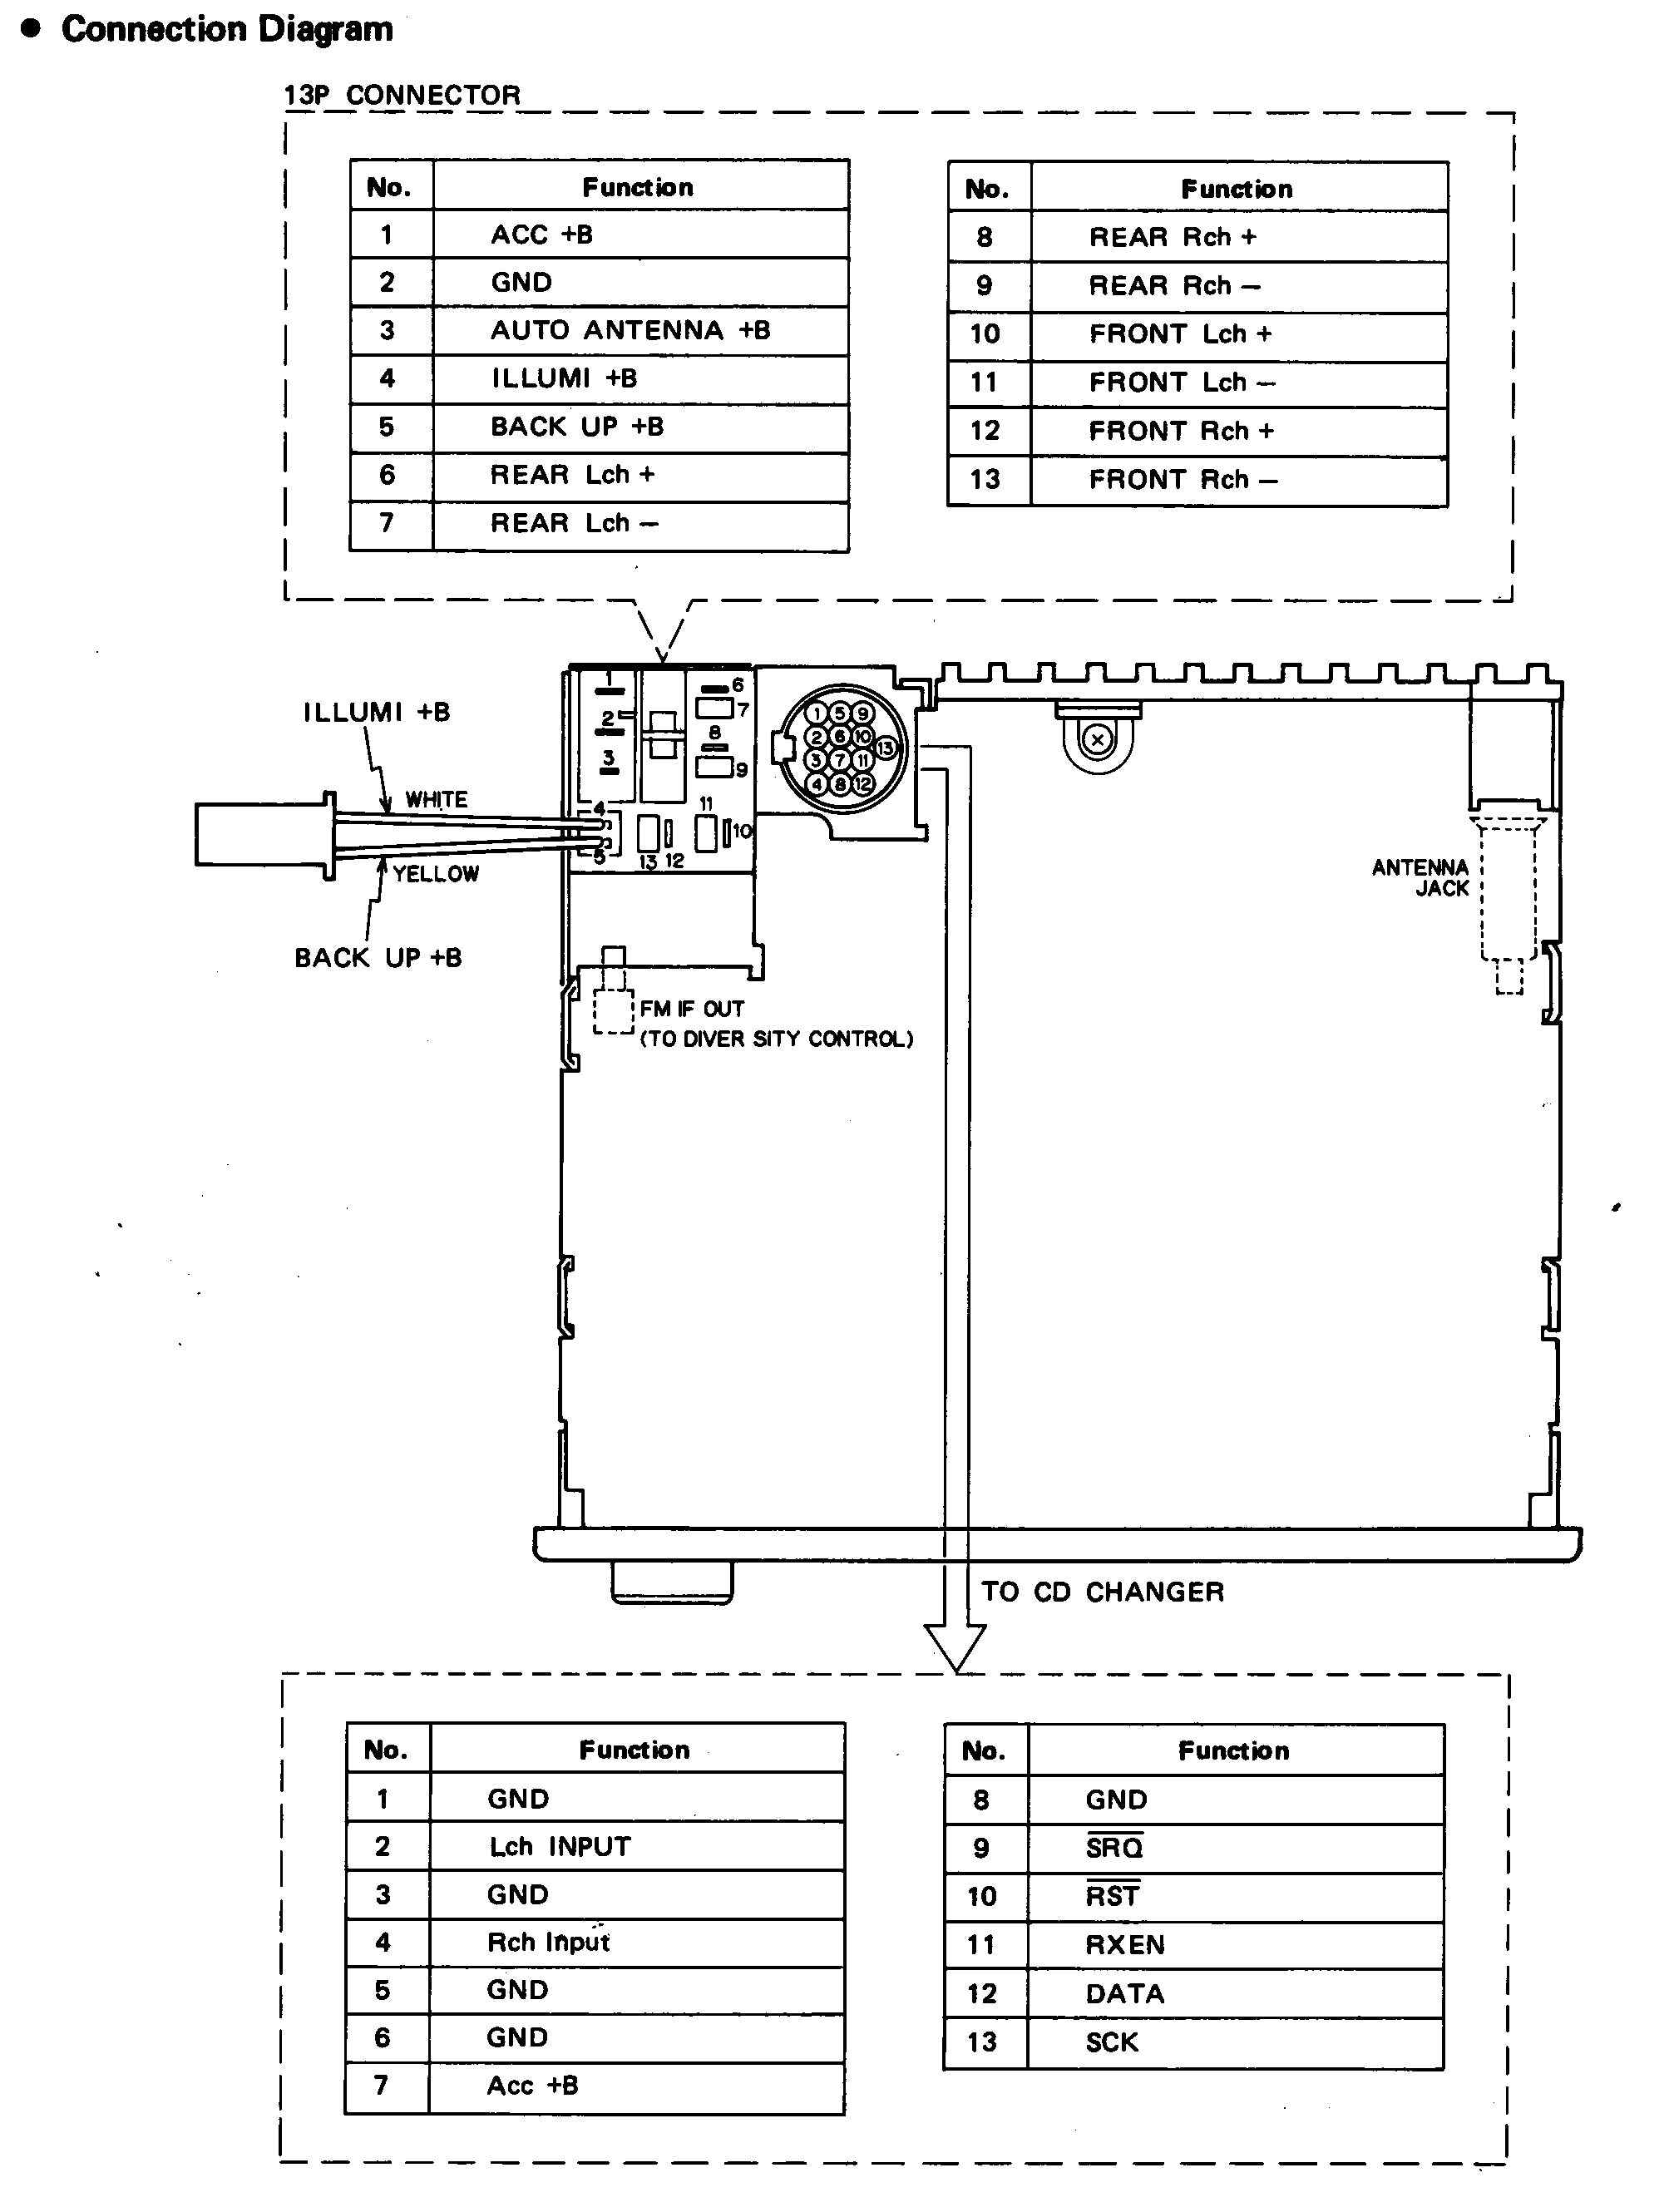 Adapter Bose Amp Wiring - Wiring Diagram Blogs on car audio wholesale warehouse, car amplifiers product, car audio system installation, car audio amp wiring, car ac unit diagram, competition car audio system diagram, car audio system packages, car stereo diagram, car audio capacitor wiring, car engine diagram, ac system diagram, car audio system setup, car speaker diagram, car audio schematics, car audio system install, car audio diagrams and charts, car audio installation diagram, car audio wiring color codes, car circuit diagram, car audio setup diagram,